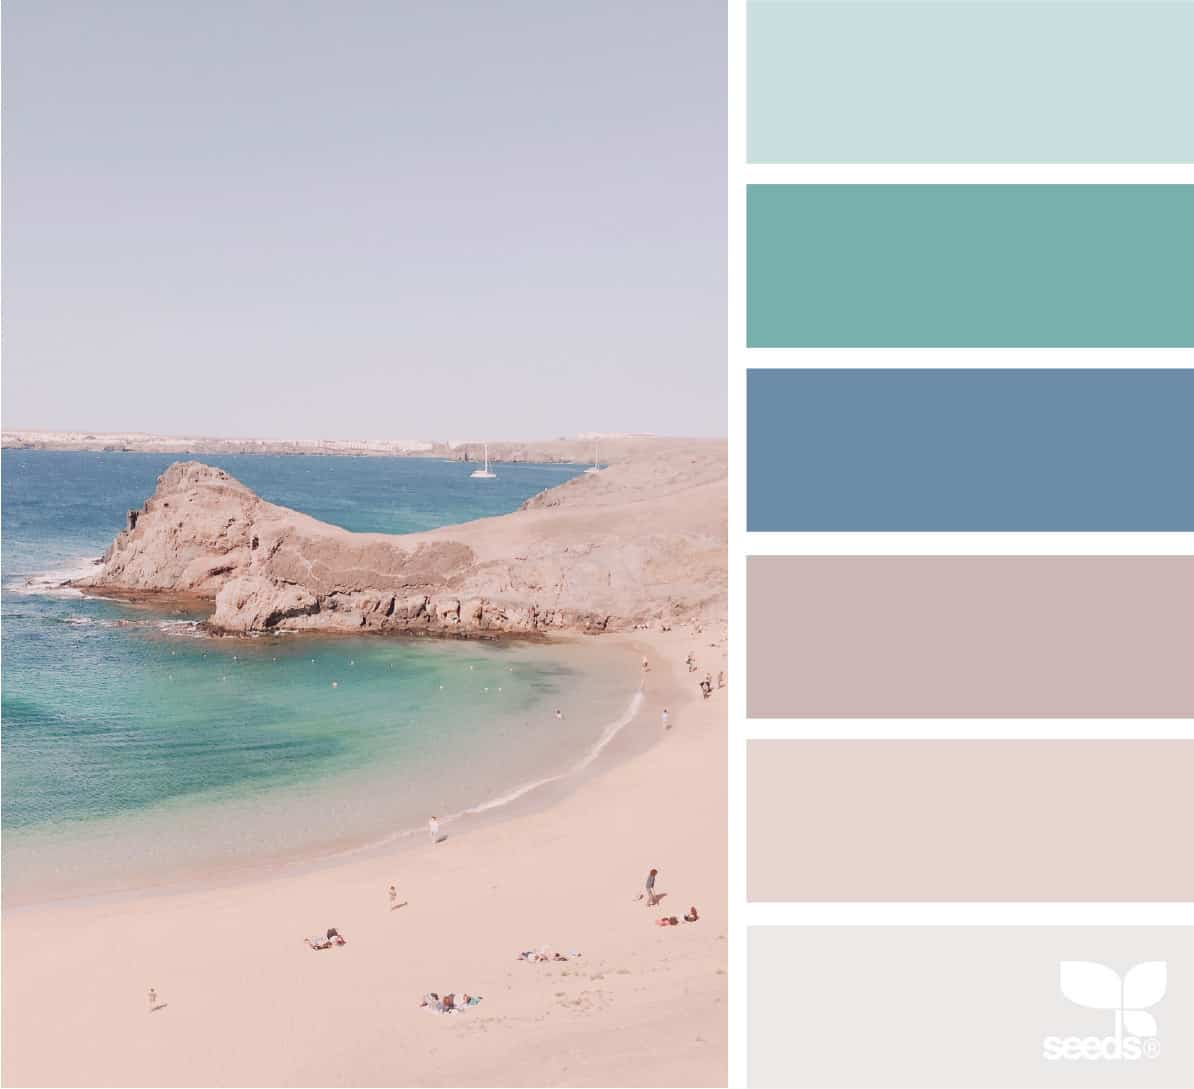 ocean view with peninsula and color palette